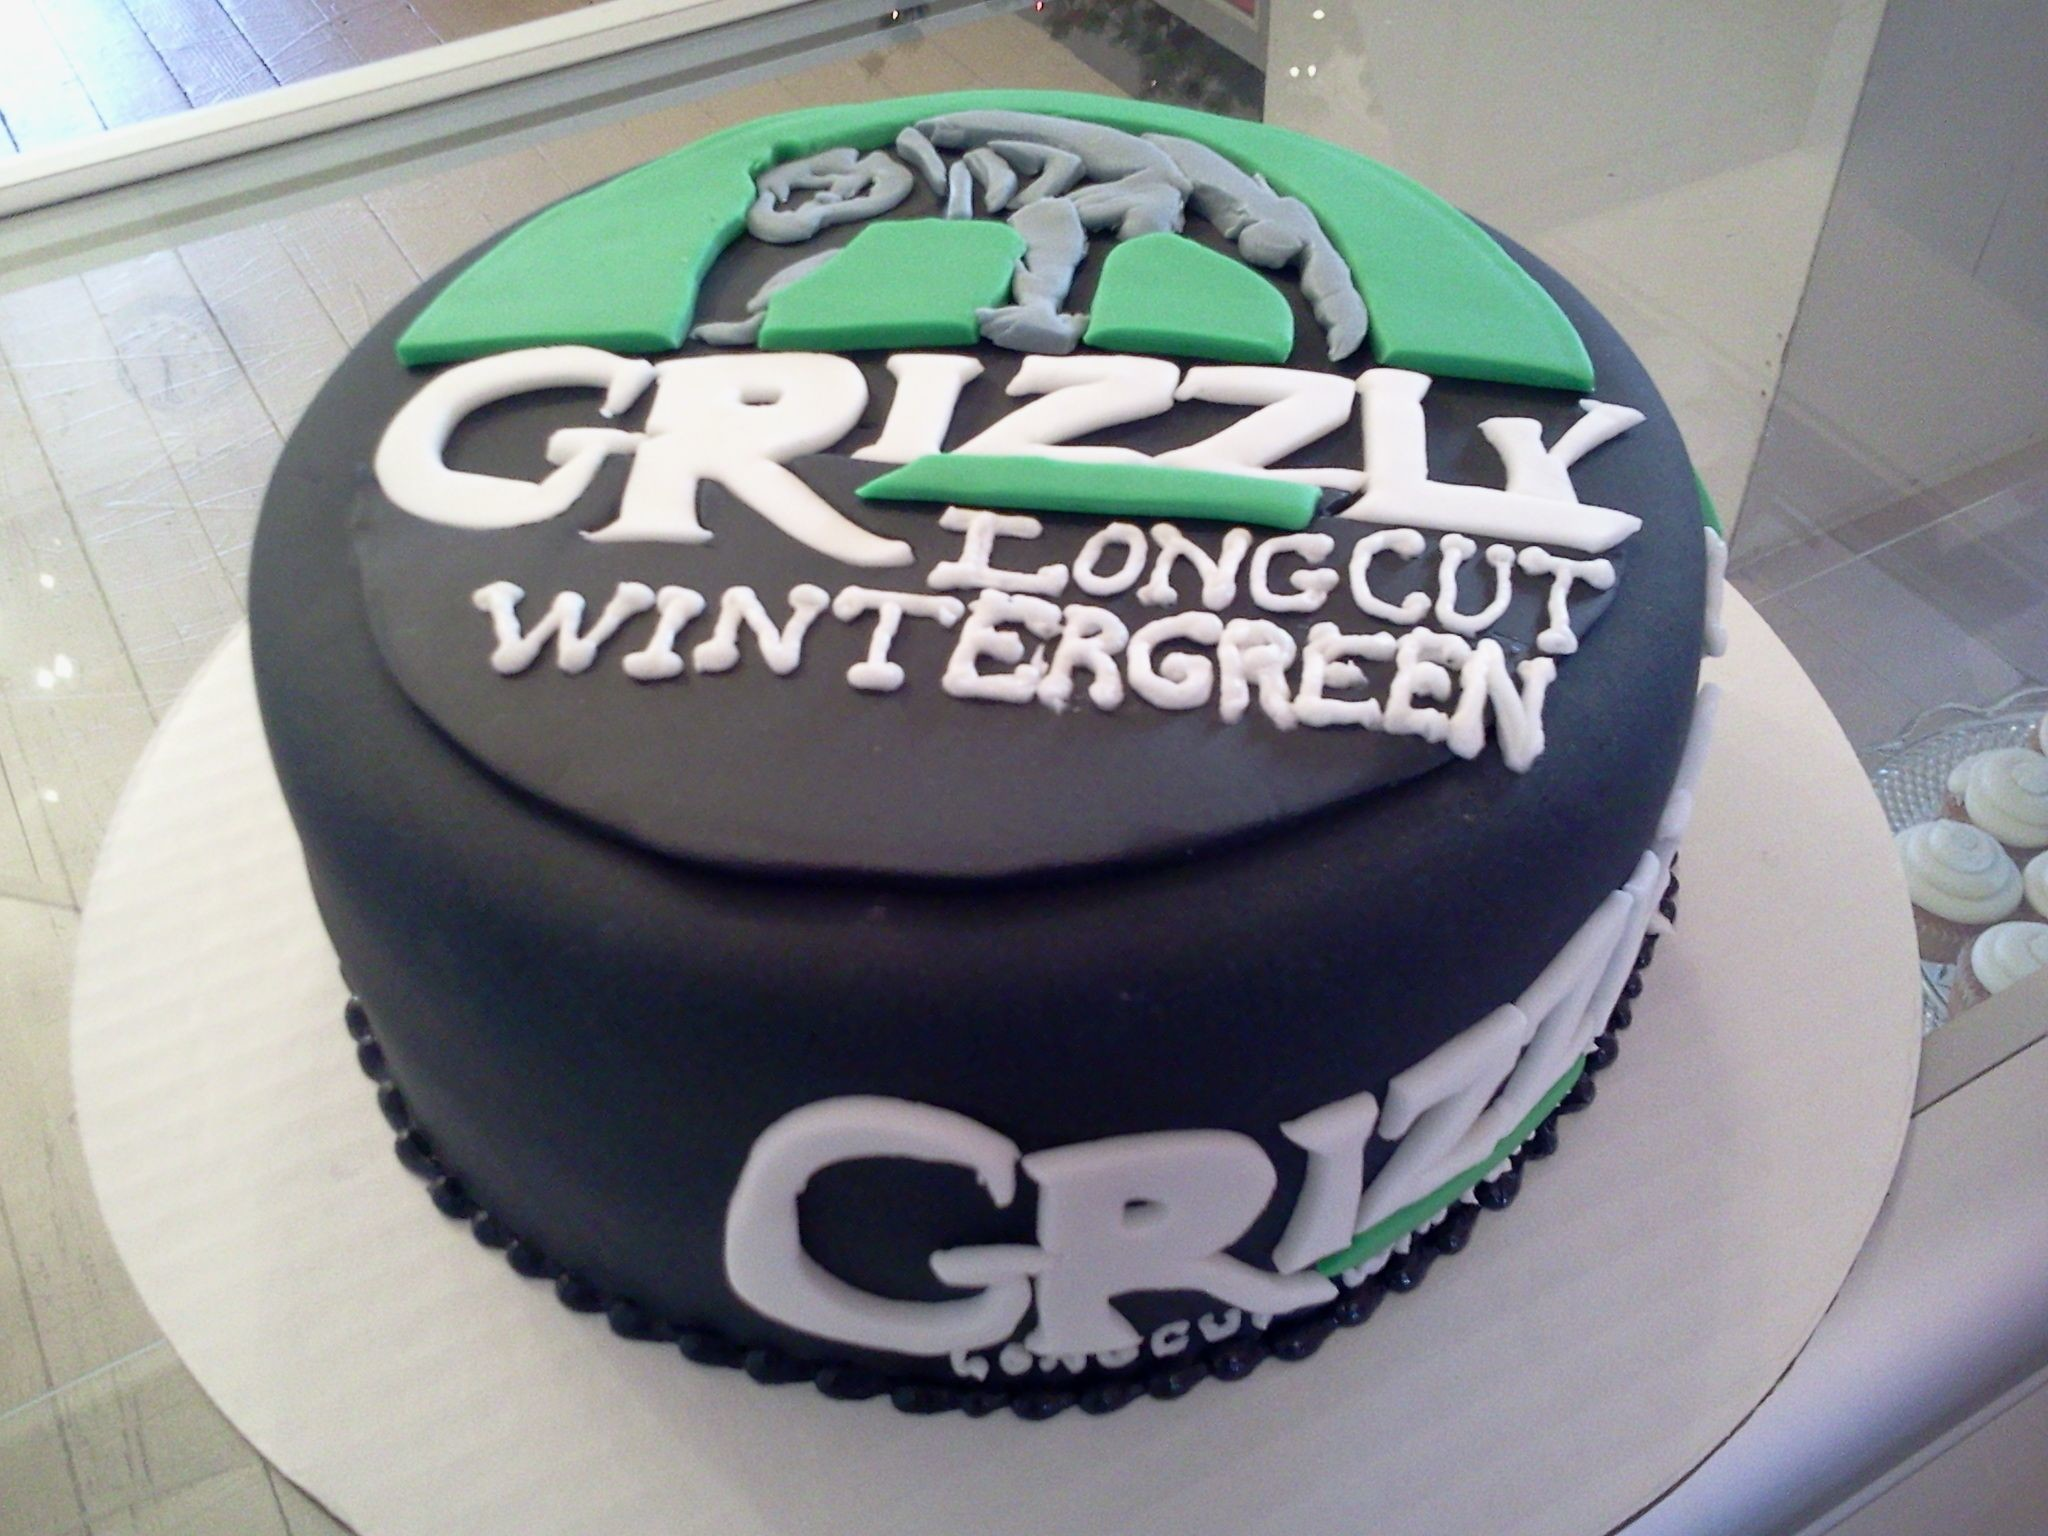 Res: 2048x1536, Grizzly Dip Can Cake